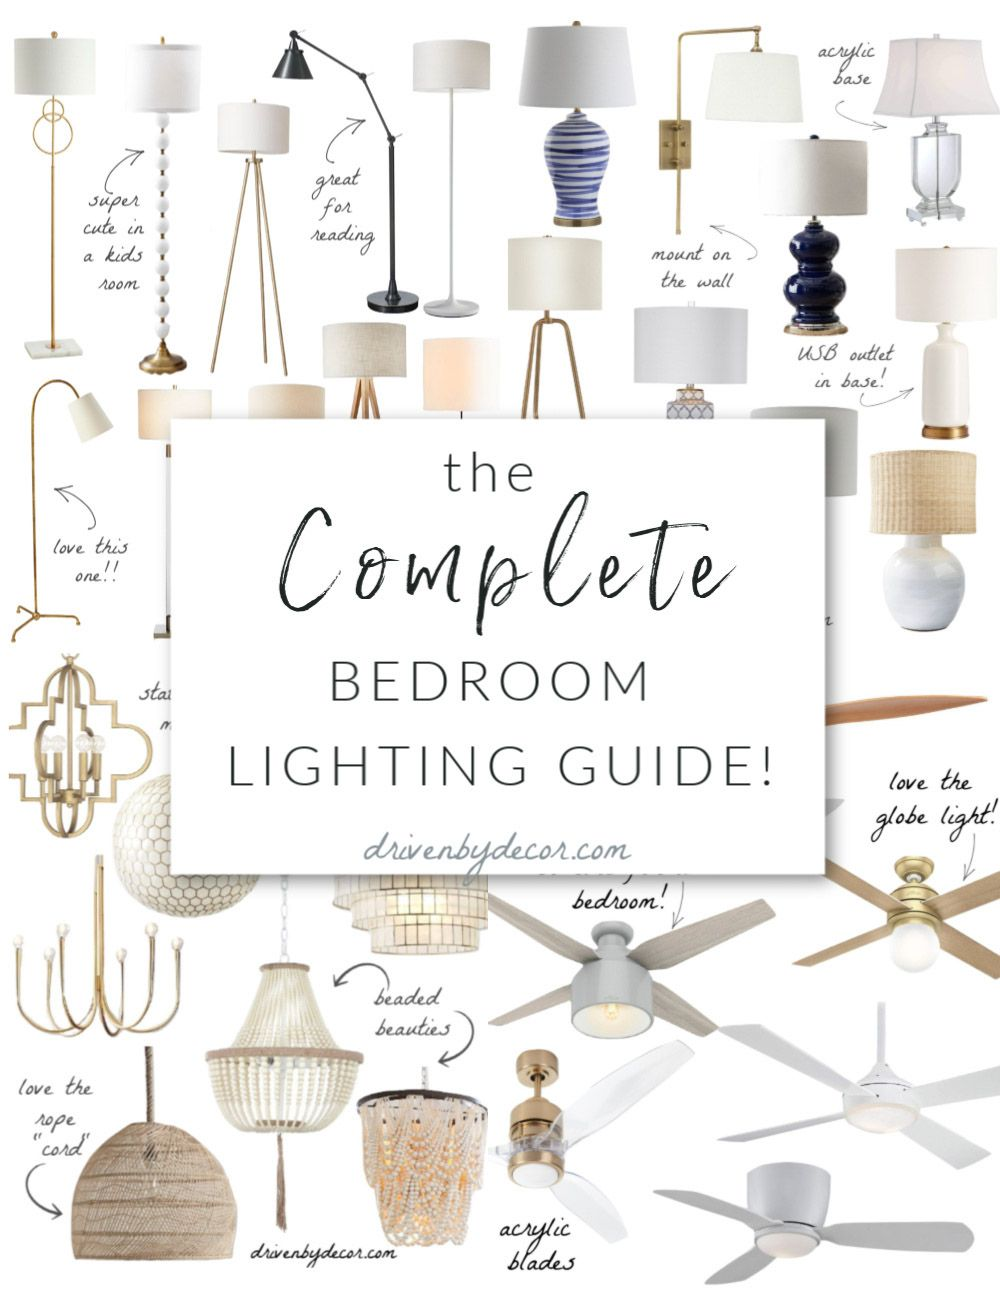 Guide to chandeliers in the bedroom